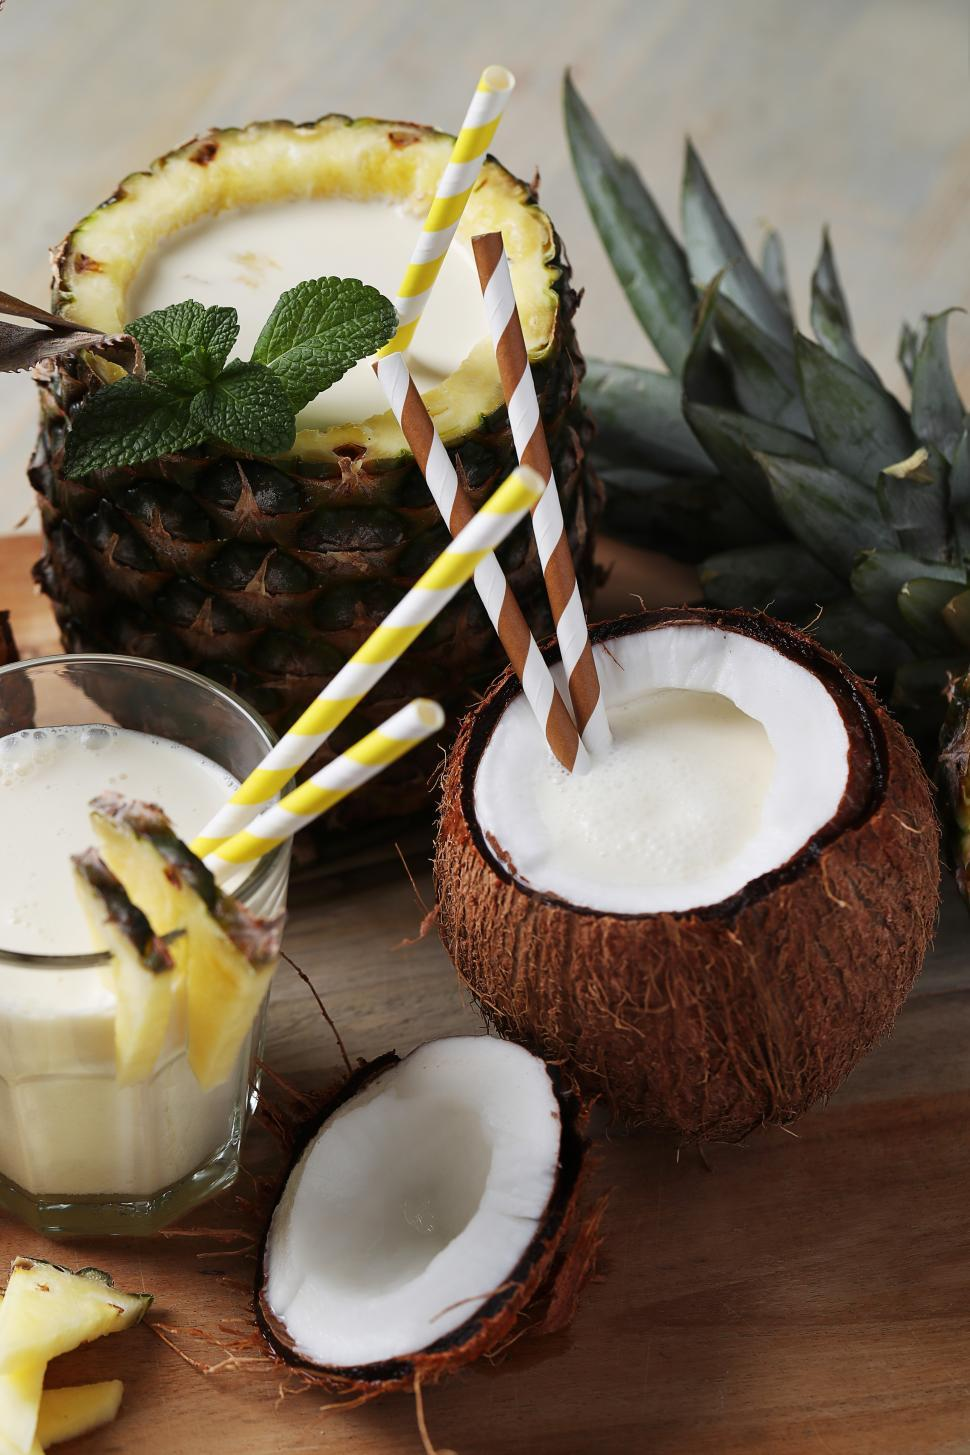 Download Free Stock Photo of Coconut drink